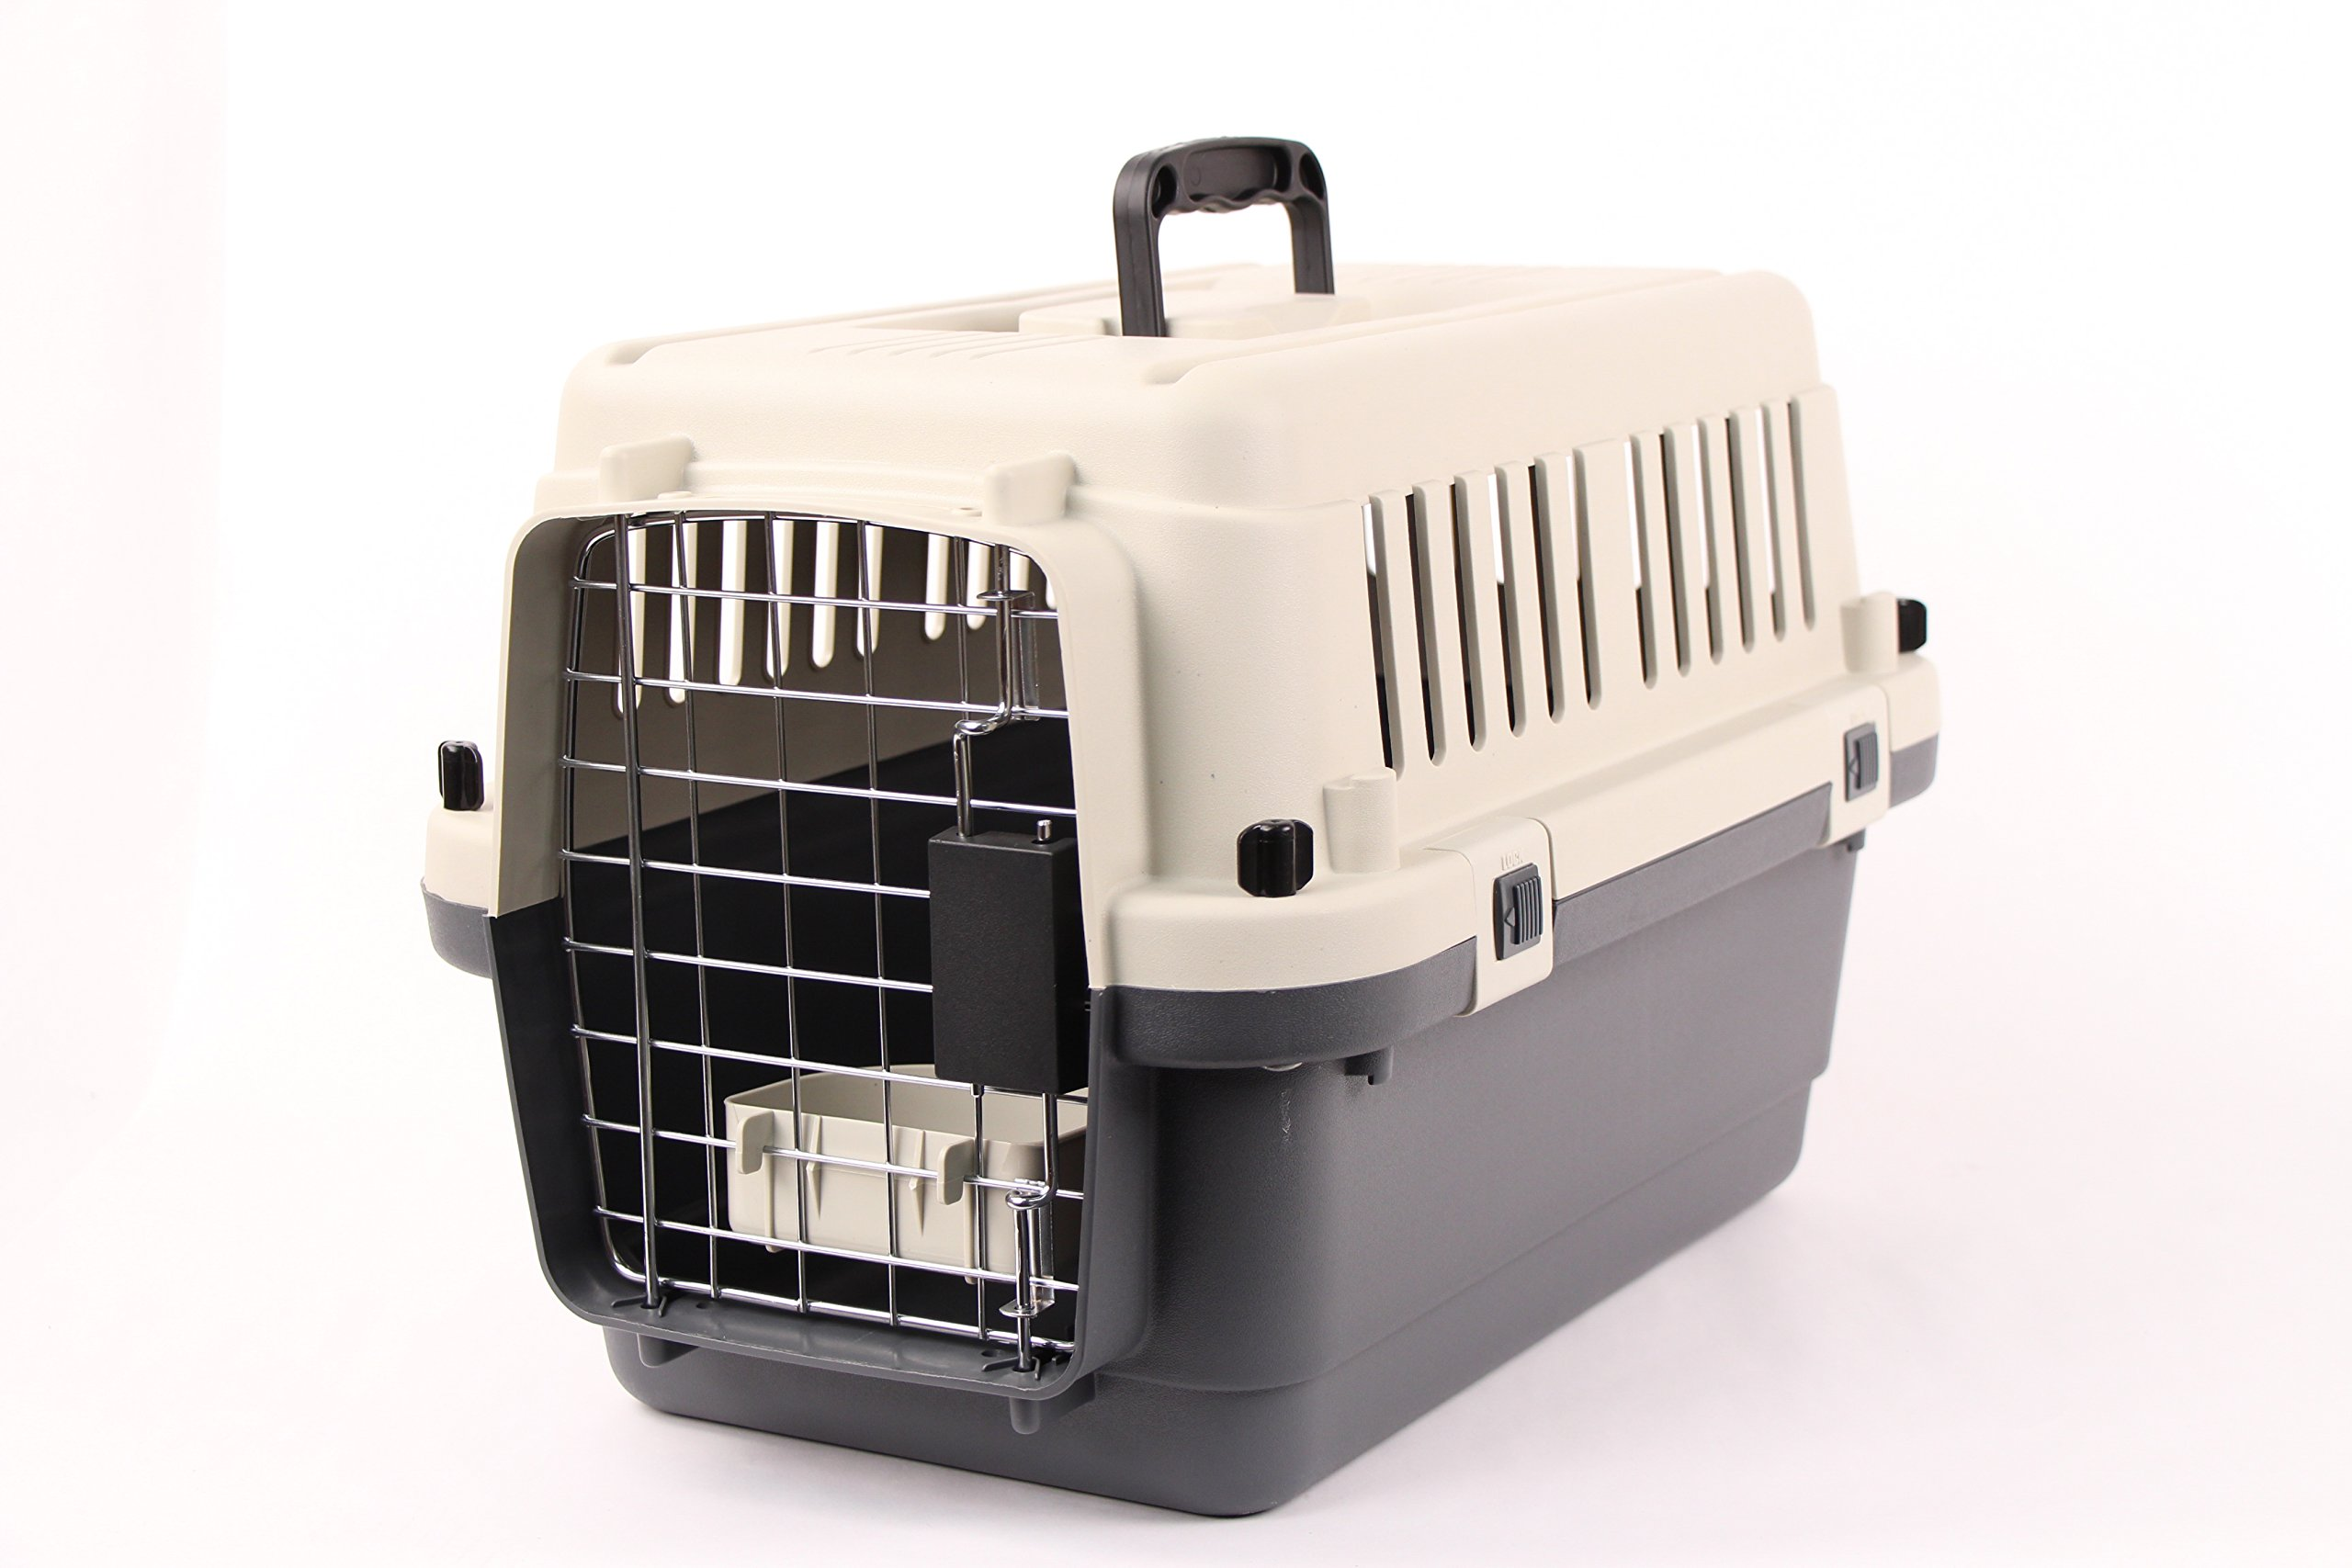 Pet Kennel Direct 24'' Airline Approved Plastic Dog / Cat Pet Kennel Carrier or Air Travel with Chrome Door and Free Cup Foldable Dog Travel Crate by Pet Kennel Direct